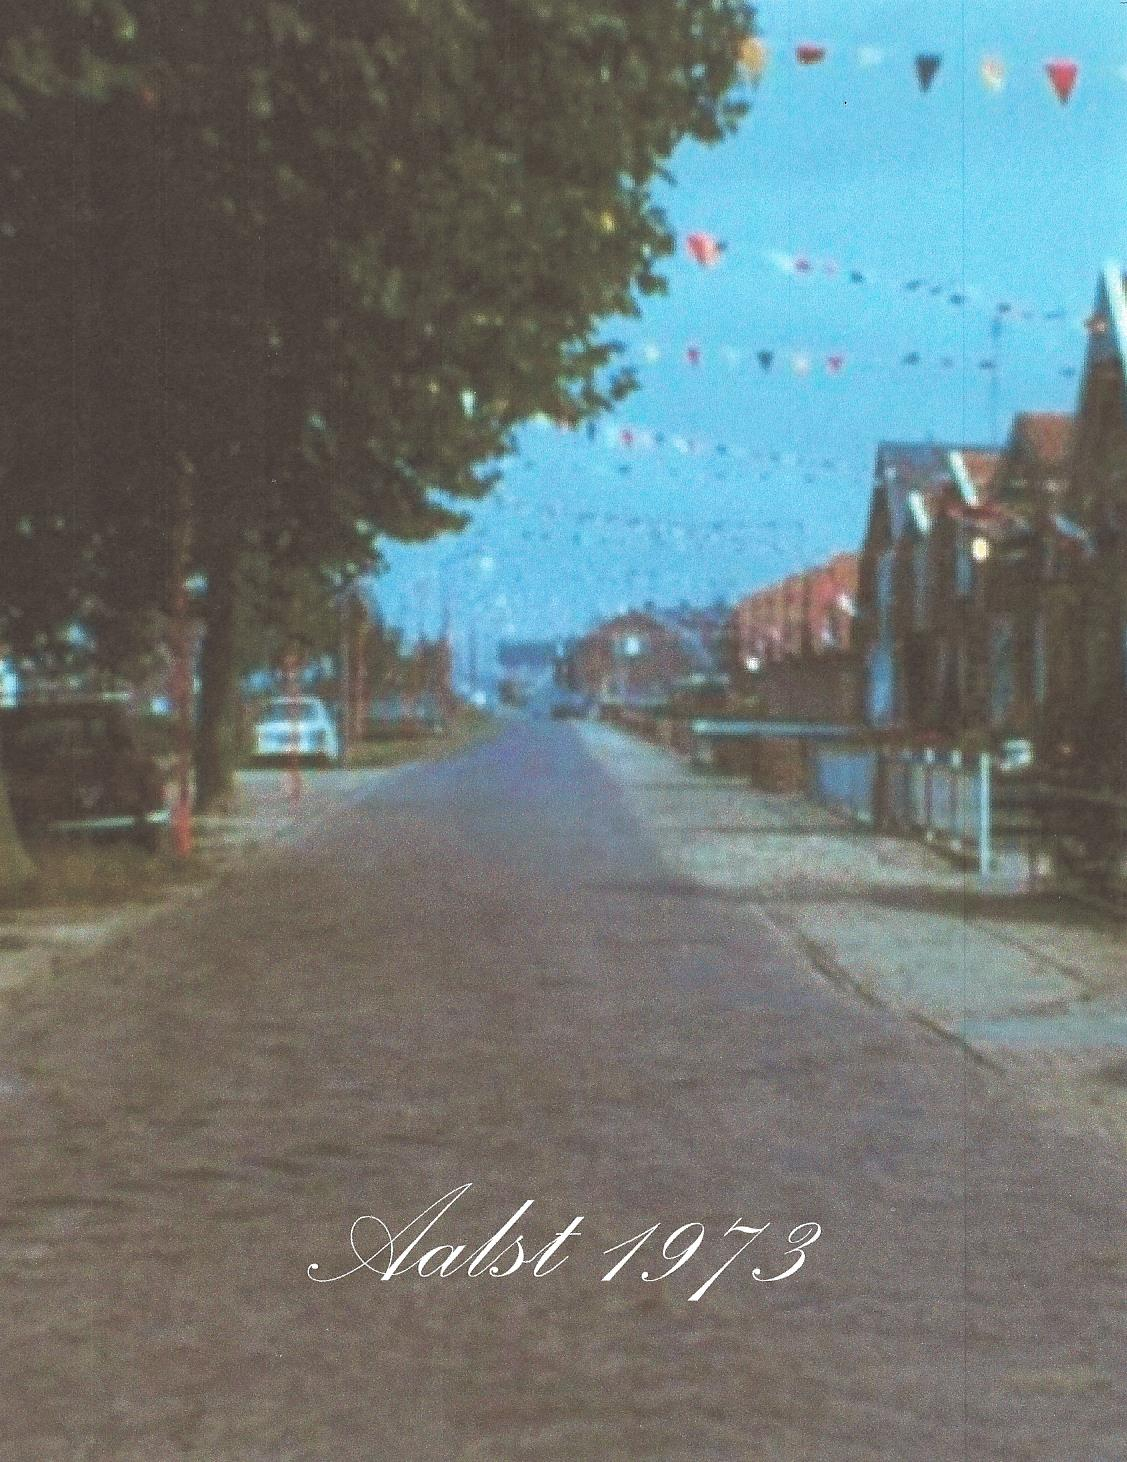 Aalst 1973 DVD